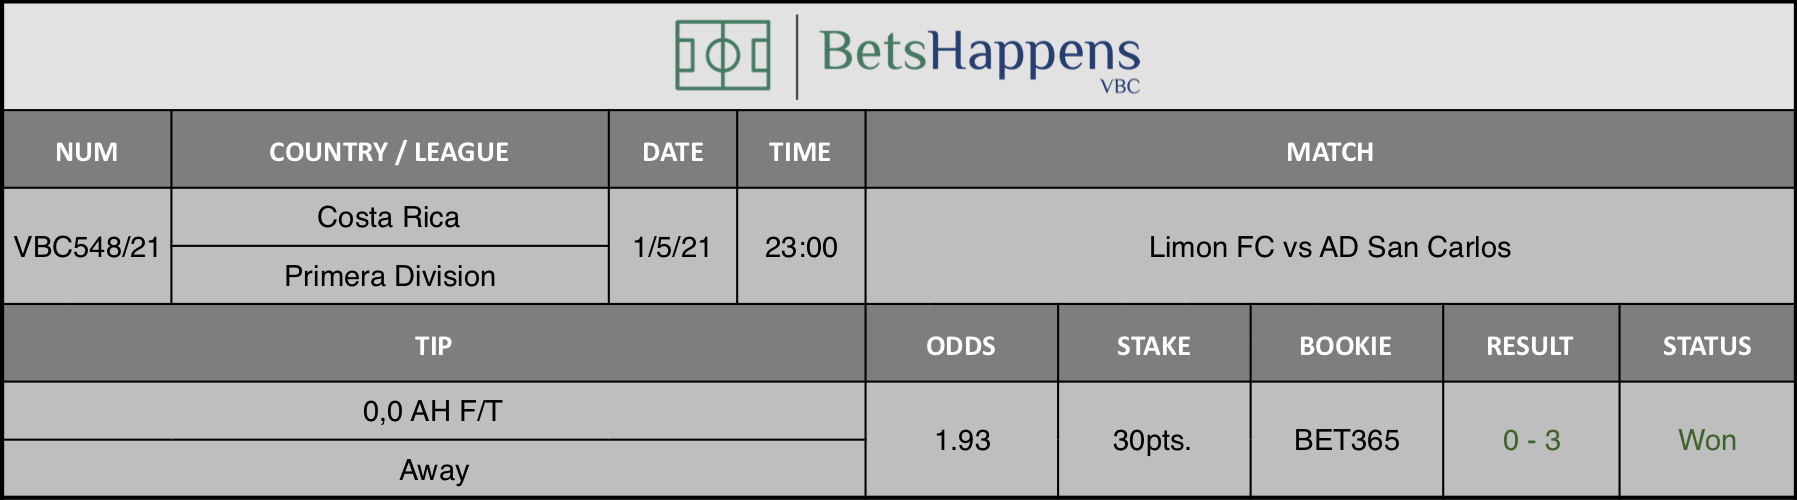 Results of our tip for the Limon FC vs AD San Carlos  match where 0,0 AH F/T  Away is recommended.